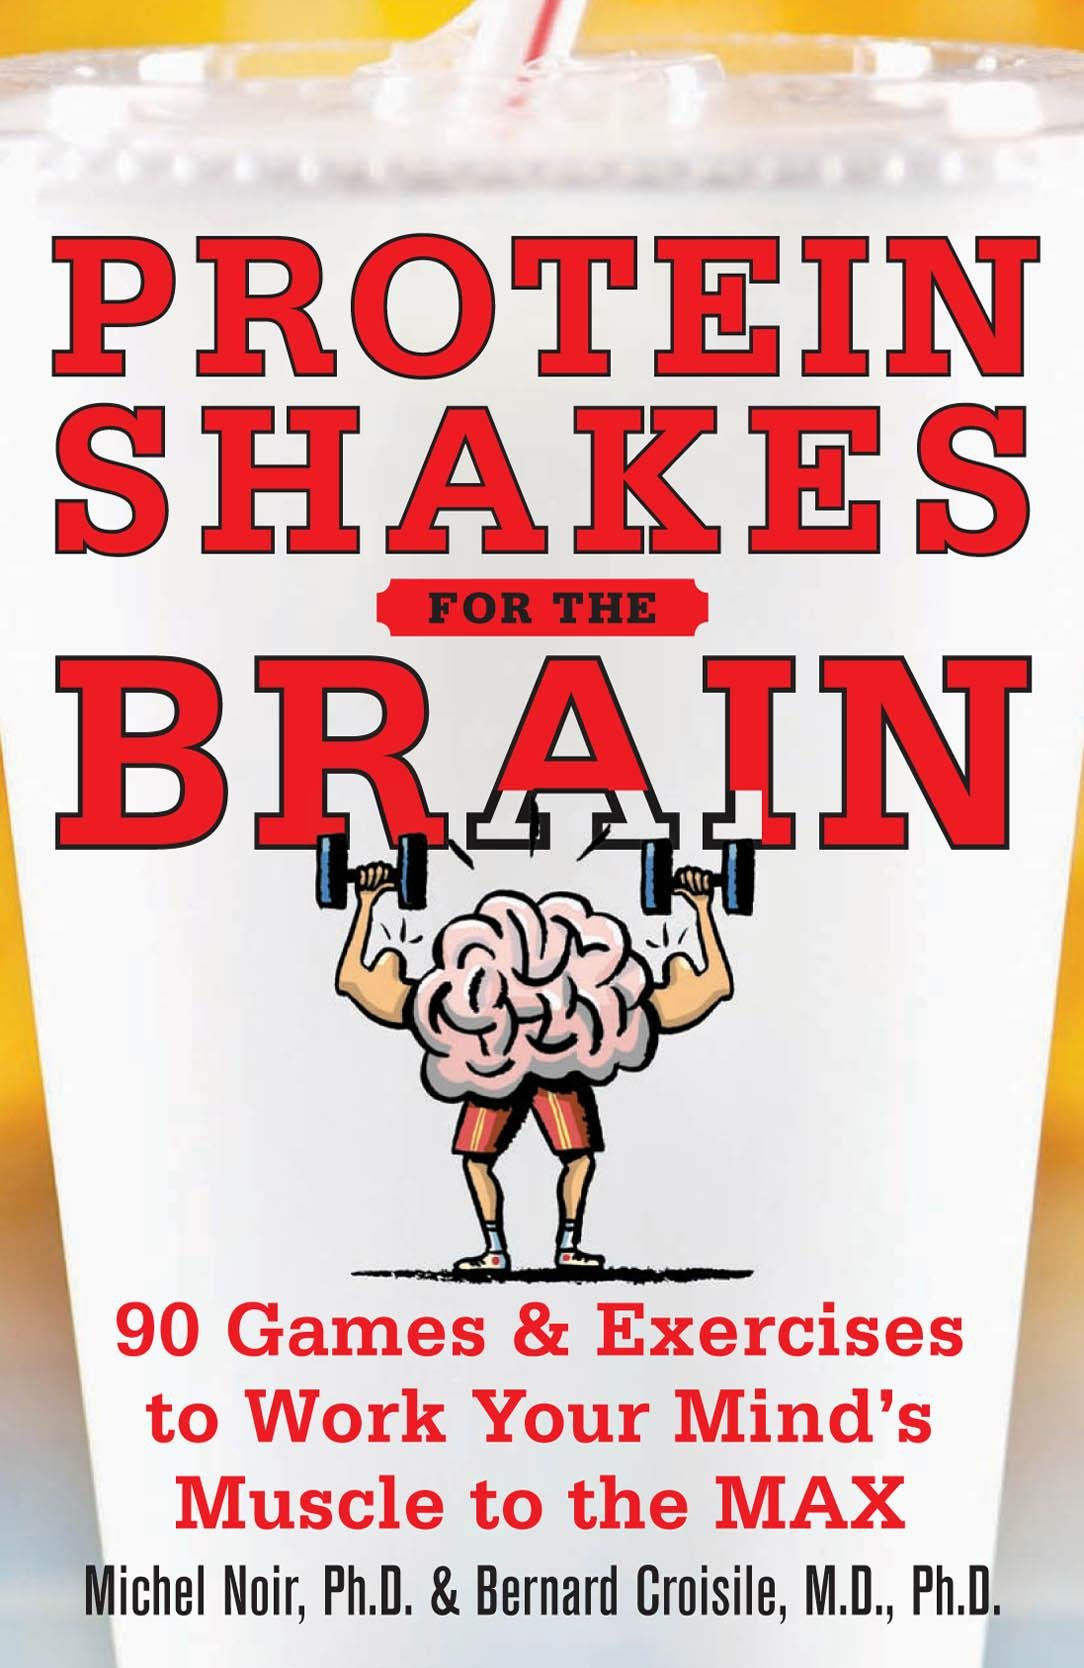 Protein Shakes for the Brain: 91 Games and Exercises to Work Your Mind's Muscle to the Max